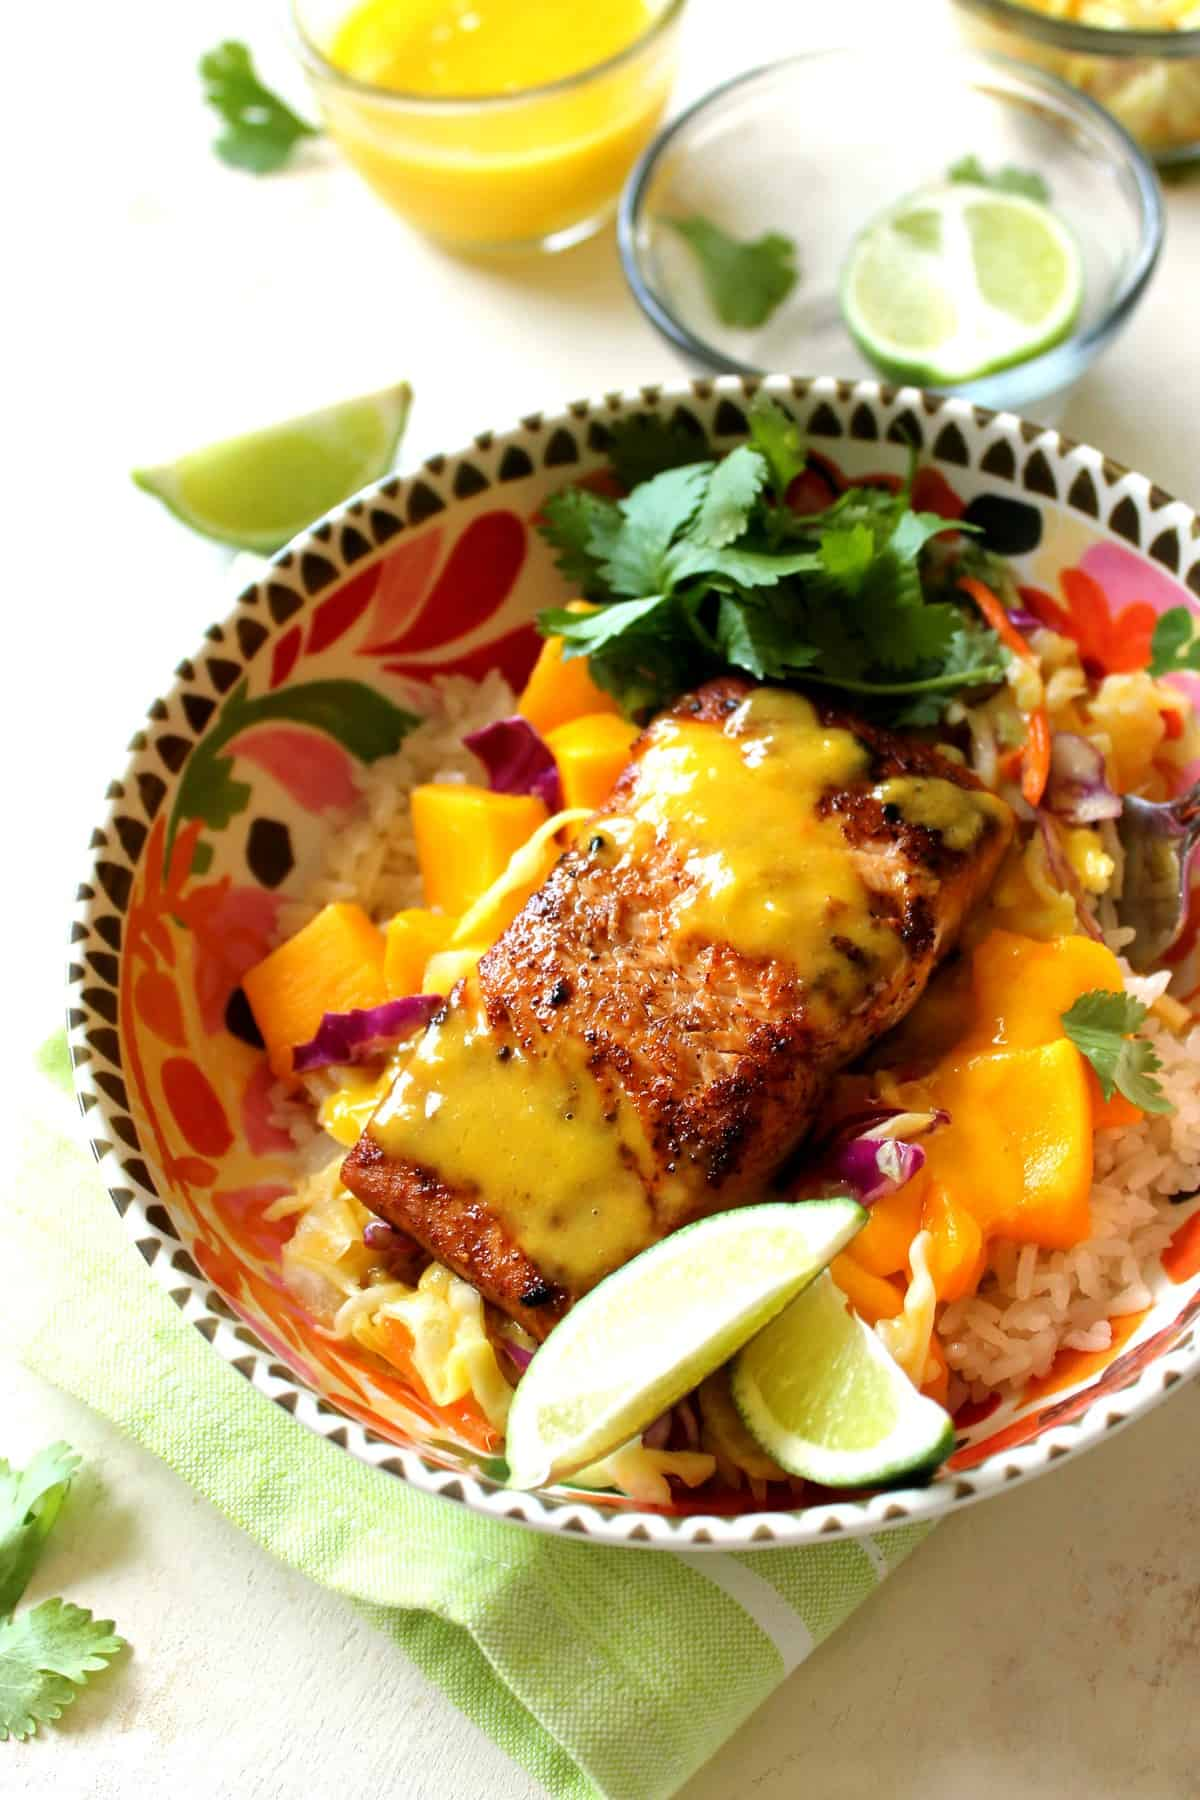 Mango Salmon Bowls with Coconut Rice make for a healthy, hearty summer meal that captures the flavors of steamy summer nights in the tropics!